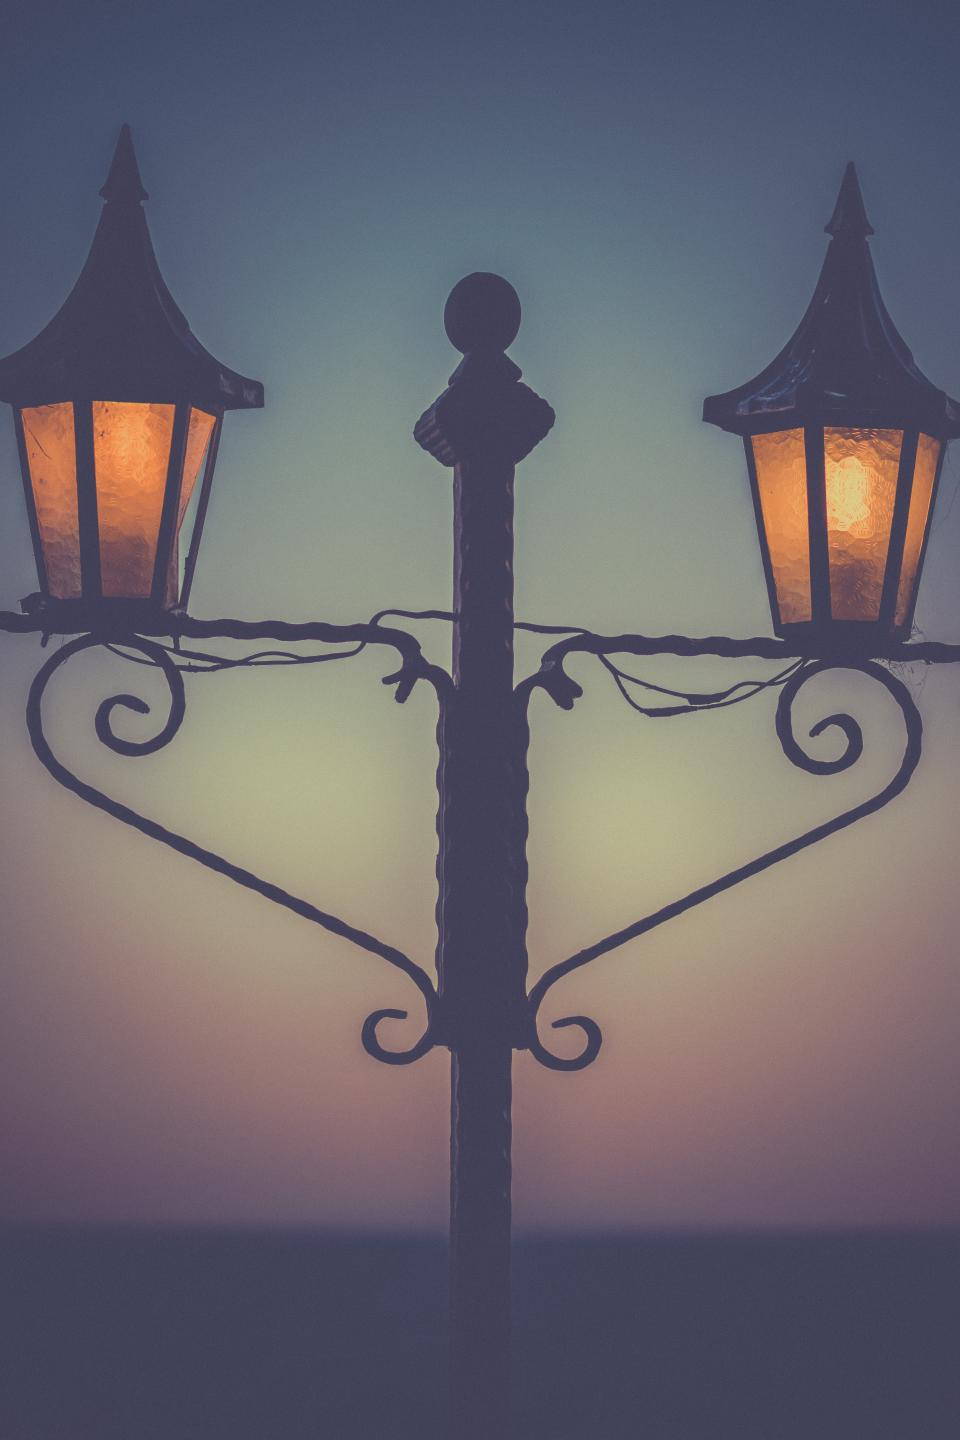 street lights, lamp posts, night, dark, evening, silhouette, shadow